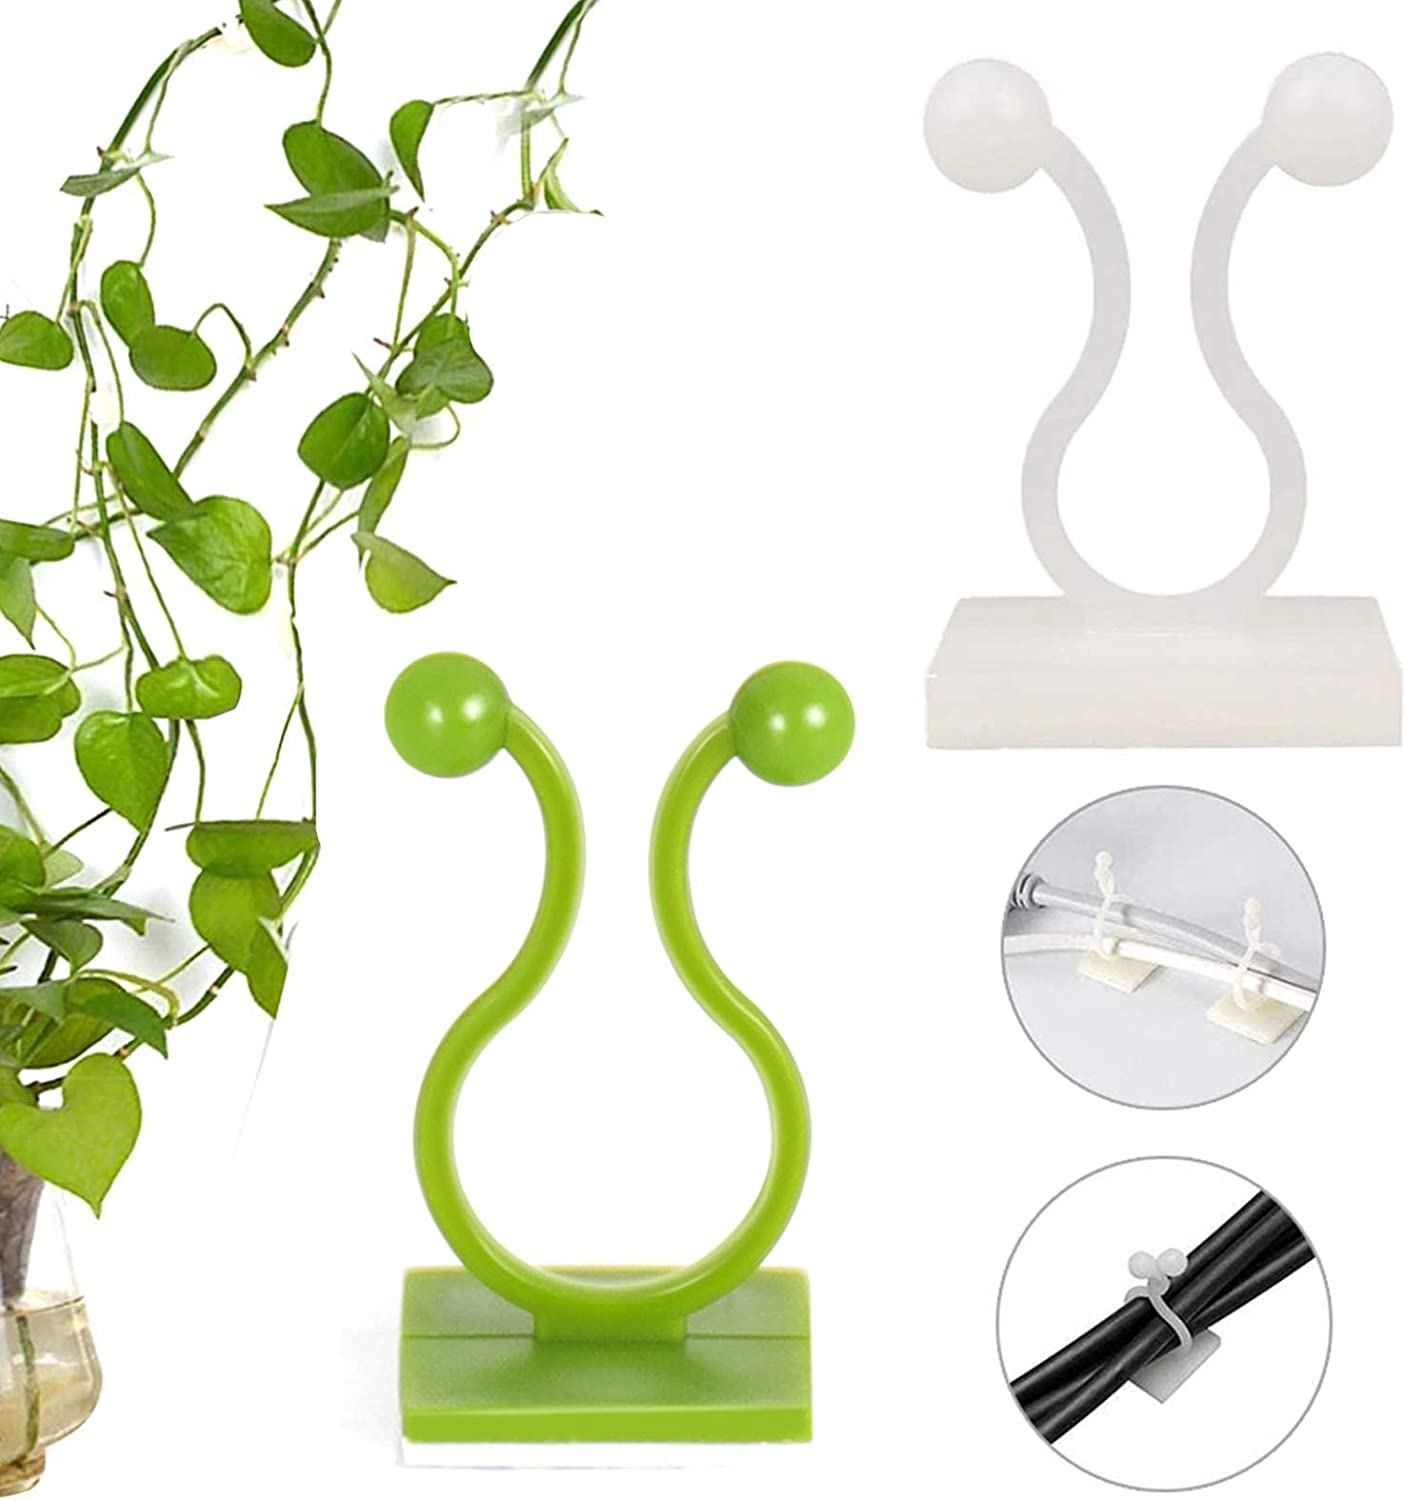 Plant Climbing Wall Fixture Clips, 100 Pcs Invisible Wall Vines Fixture Wall Sticky Hook, Vine Plant Climbing Wall Fixer with Self-Adhesive Hook for Home Decoration, Wire Fixing (Green + White)